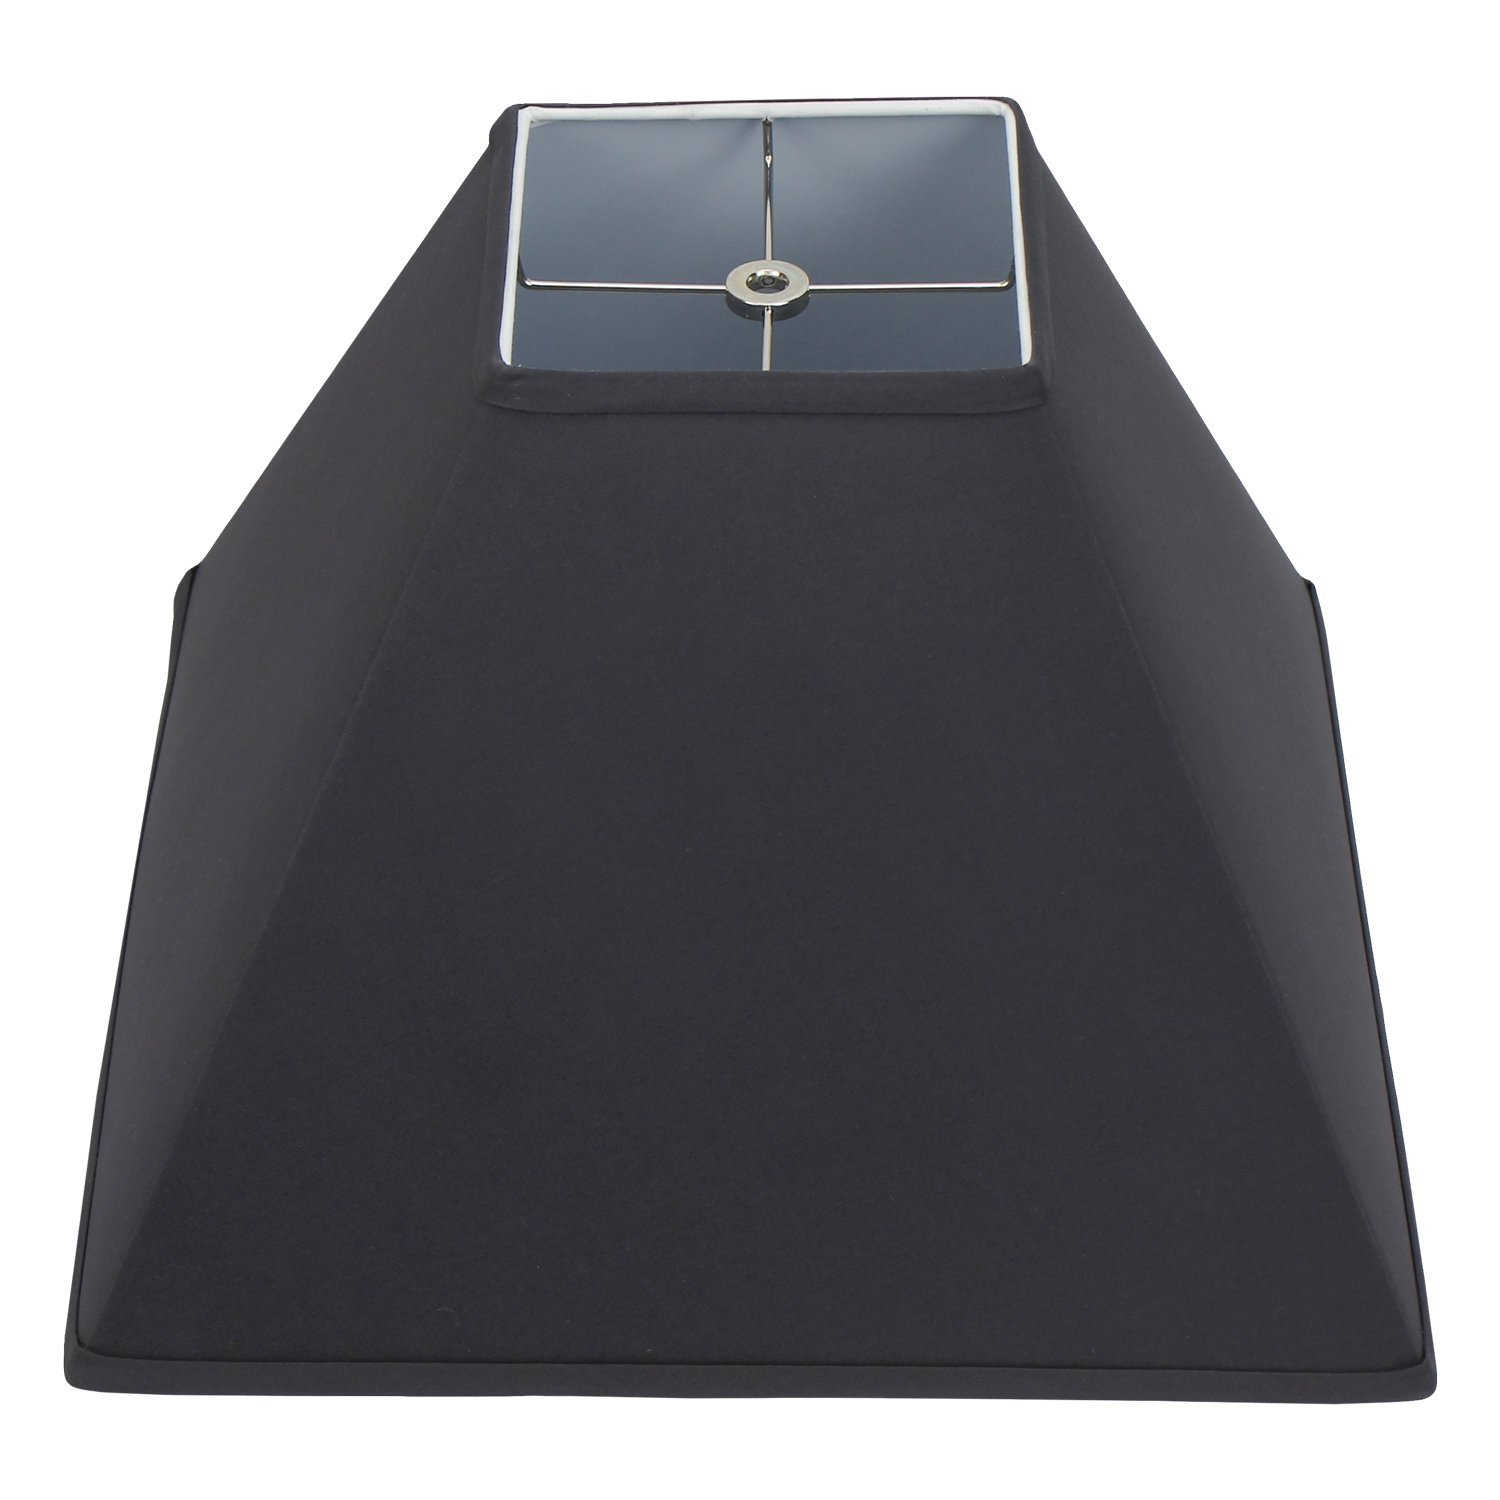 FenchelShades.com 6'' Top Dimension x 16'' Bottom Dimension 12'' Slant Height Lampshade USA Made (Charcoal)